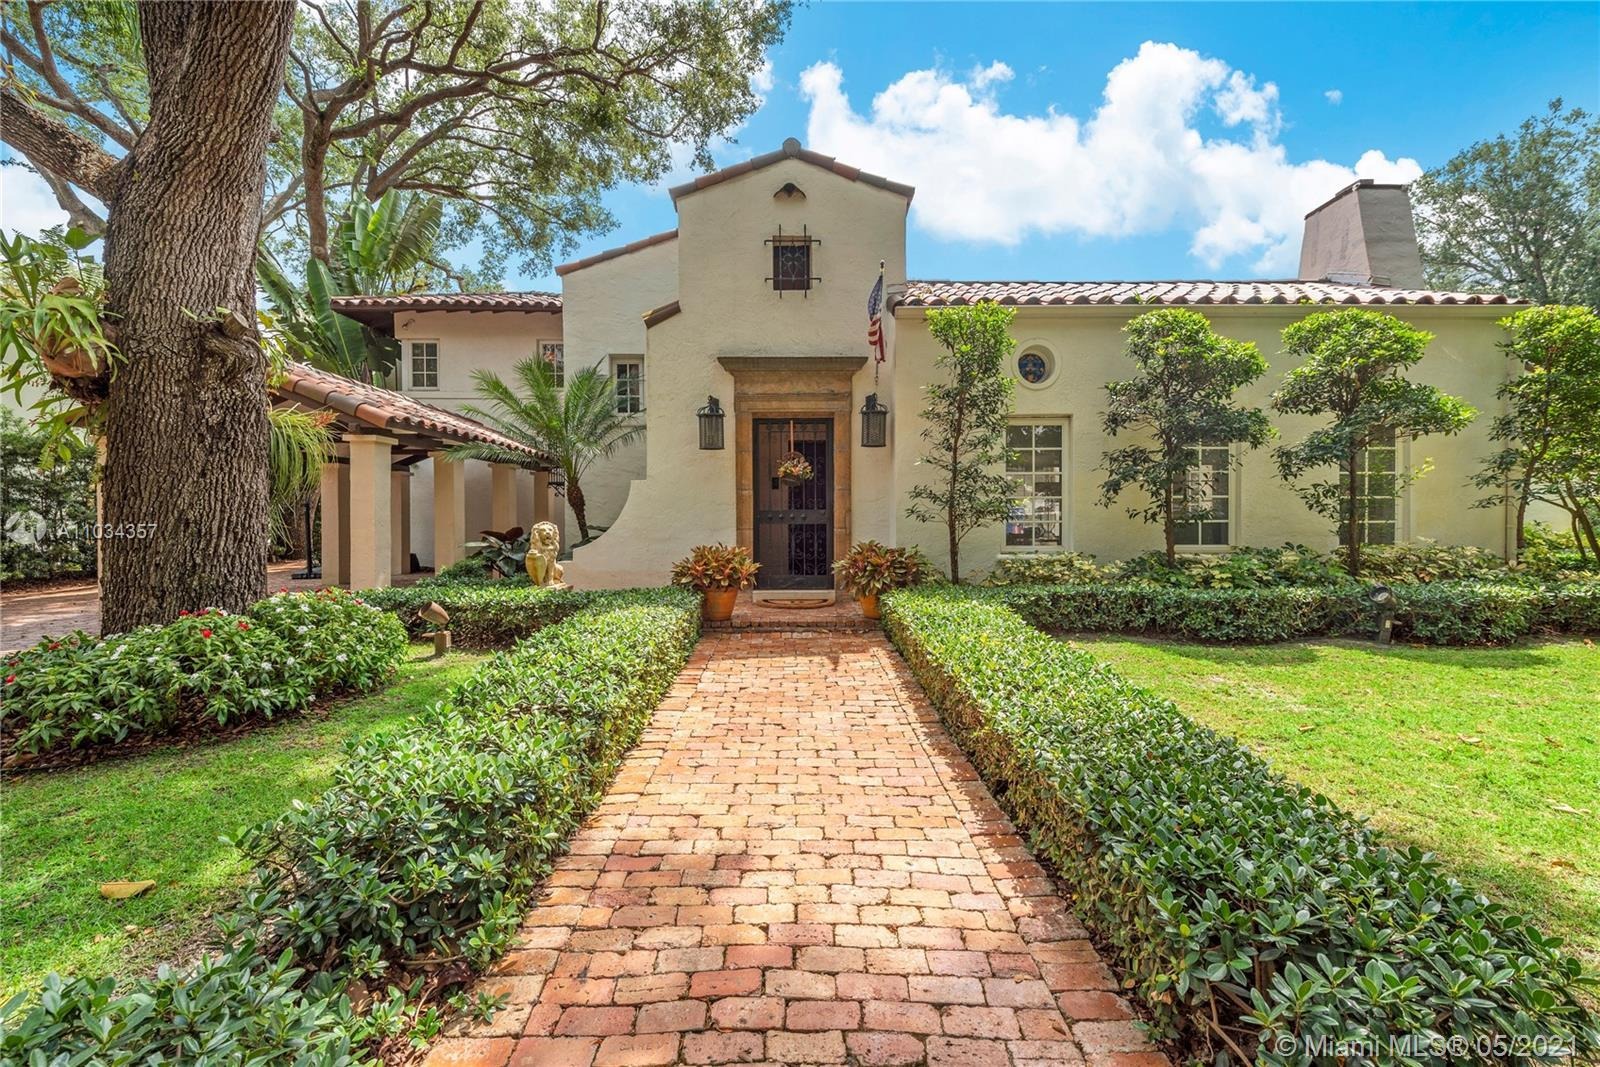 Classic 1920's Old Spanish beauty, located near the landmark Alhambra Water Tower, is exquisitely re